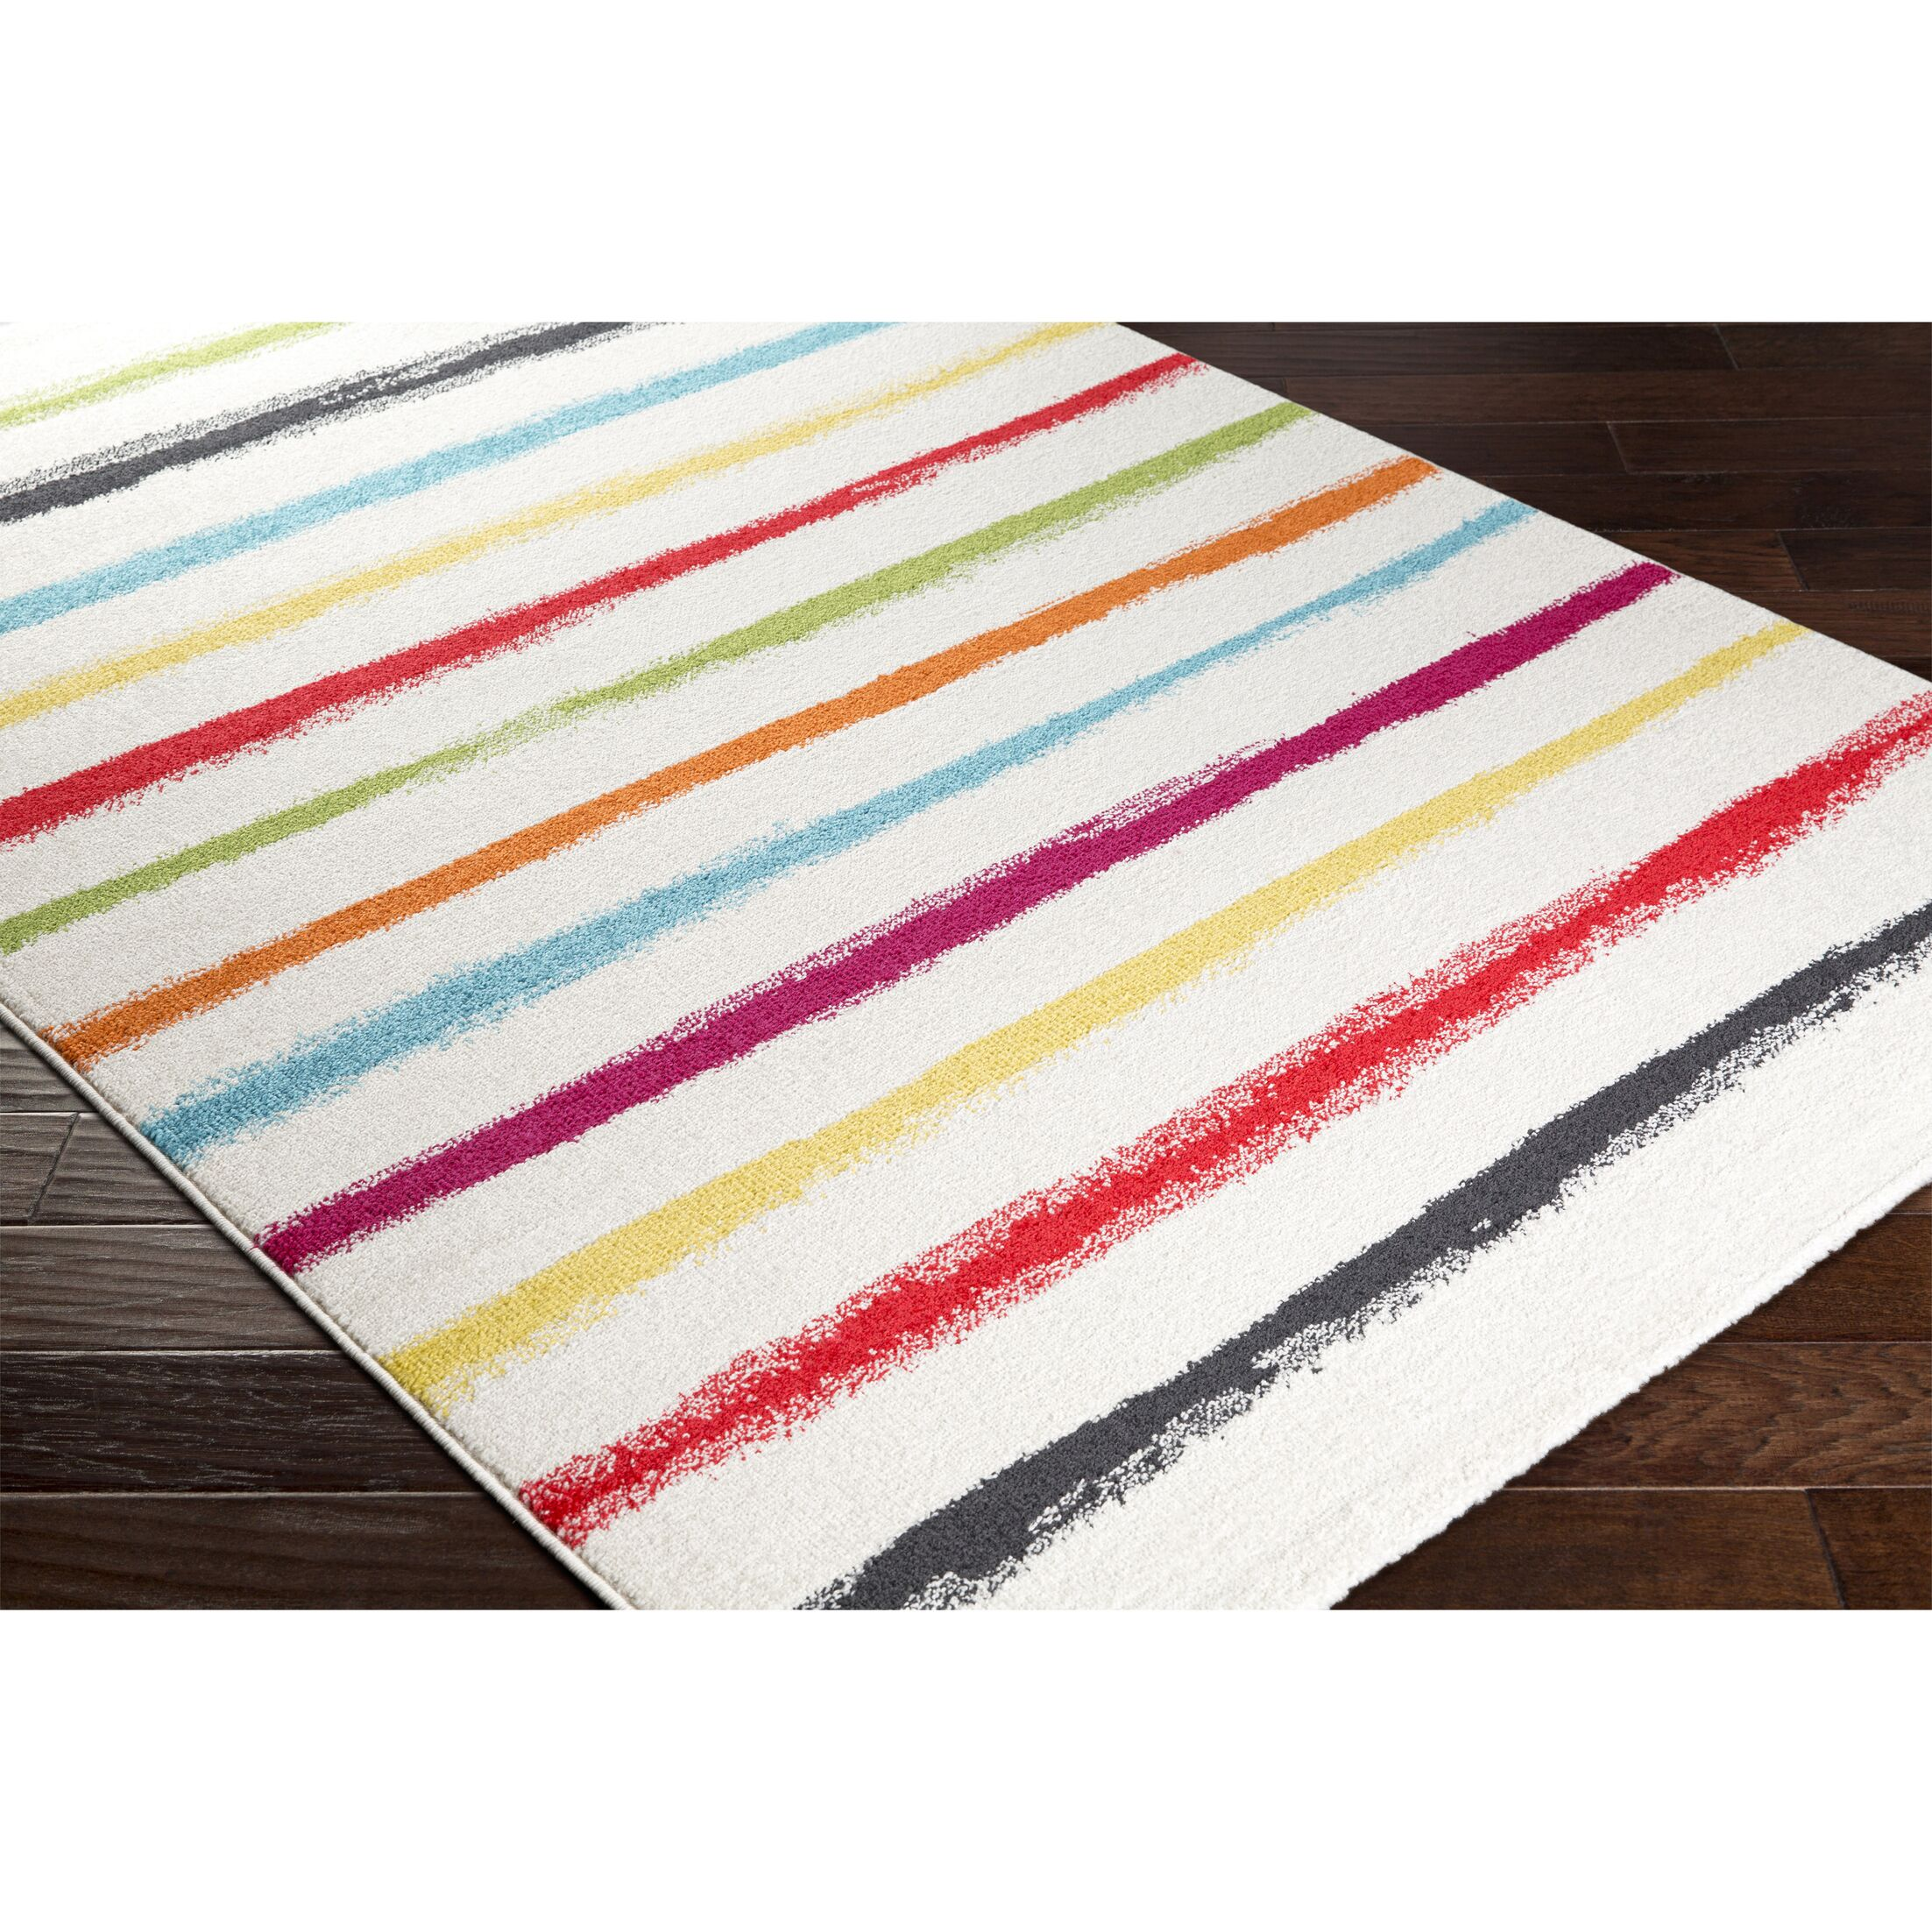 Dillsboro Neutral/Black Striped Area Rug Rug Size: Rectangle 7'11